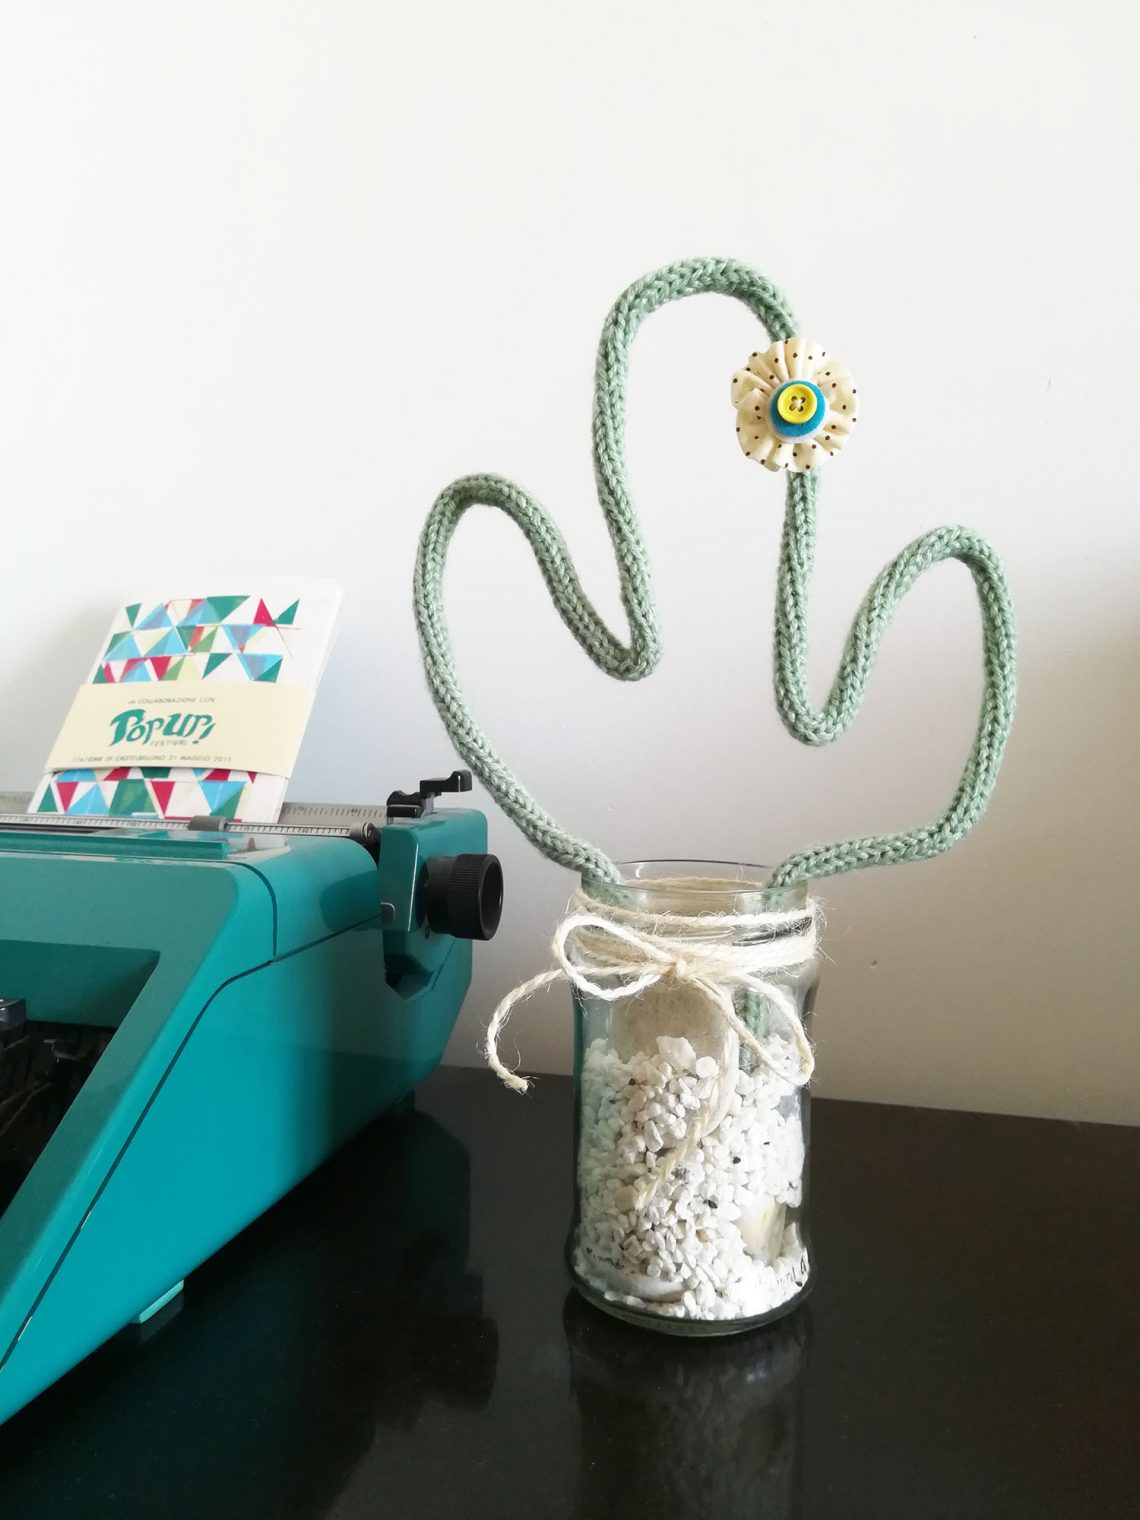 Home decor – tricotin cactus in a jar